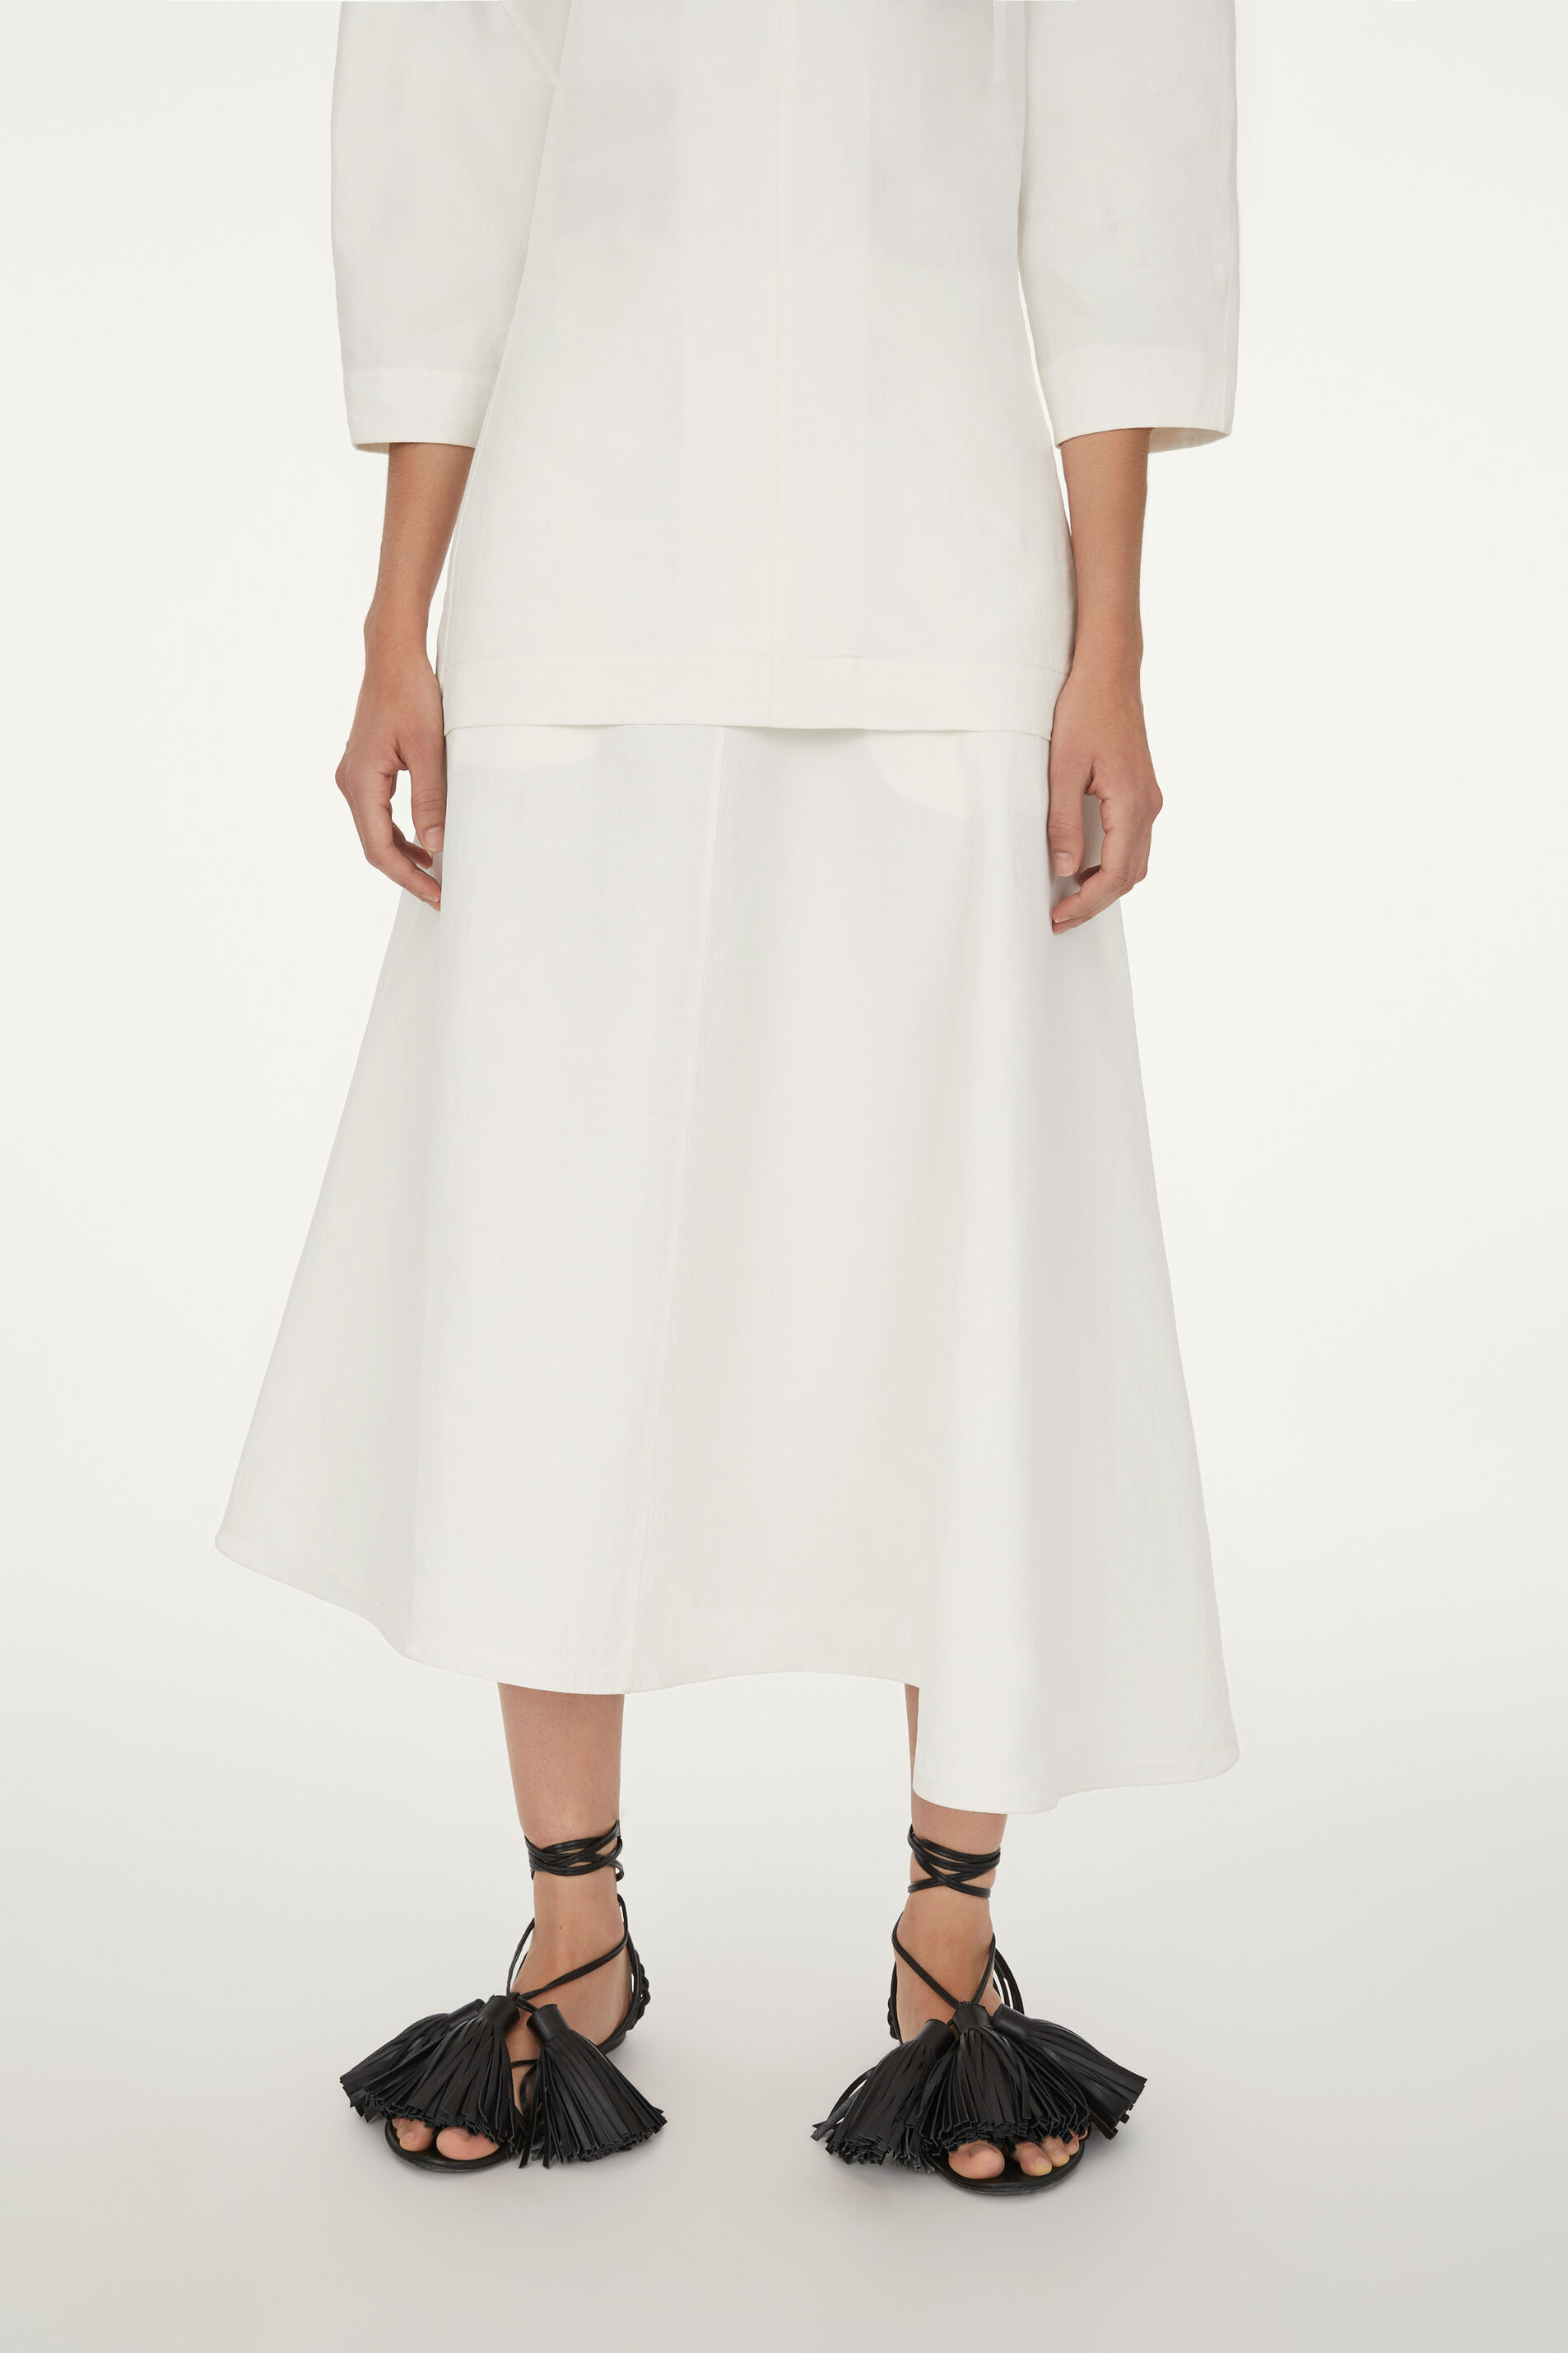 Asymmetrical Skirt, natural, large